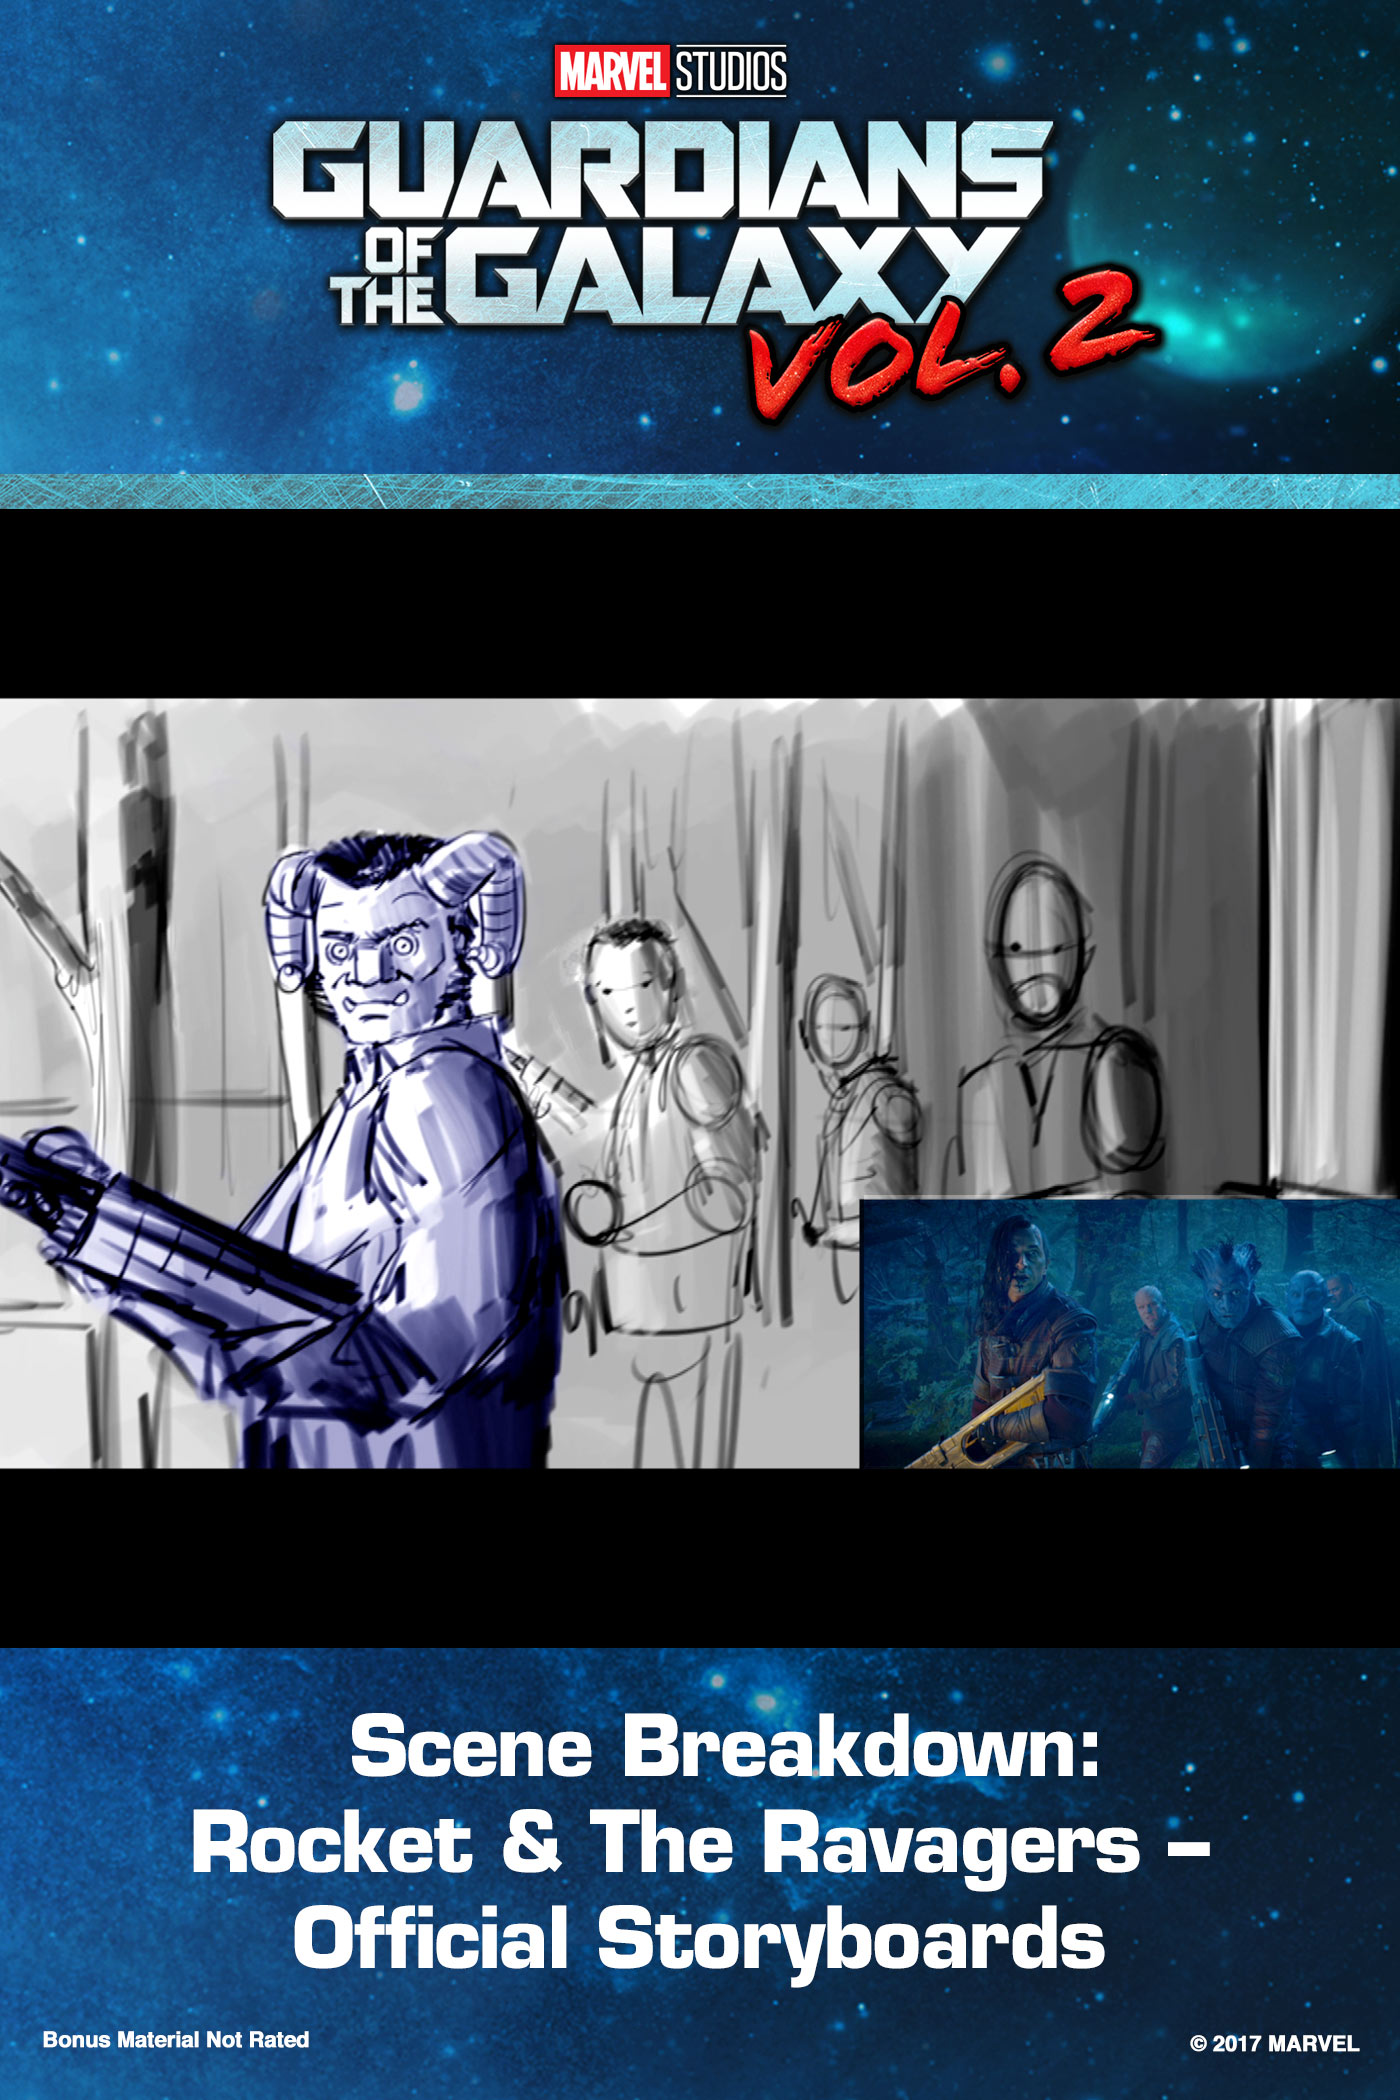 Scene Breakdown: Rocket & The Ravagers – Official Storyboards